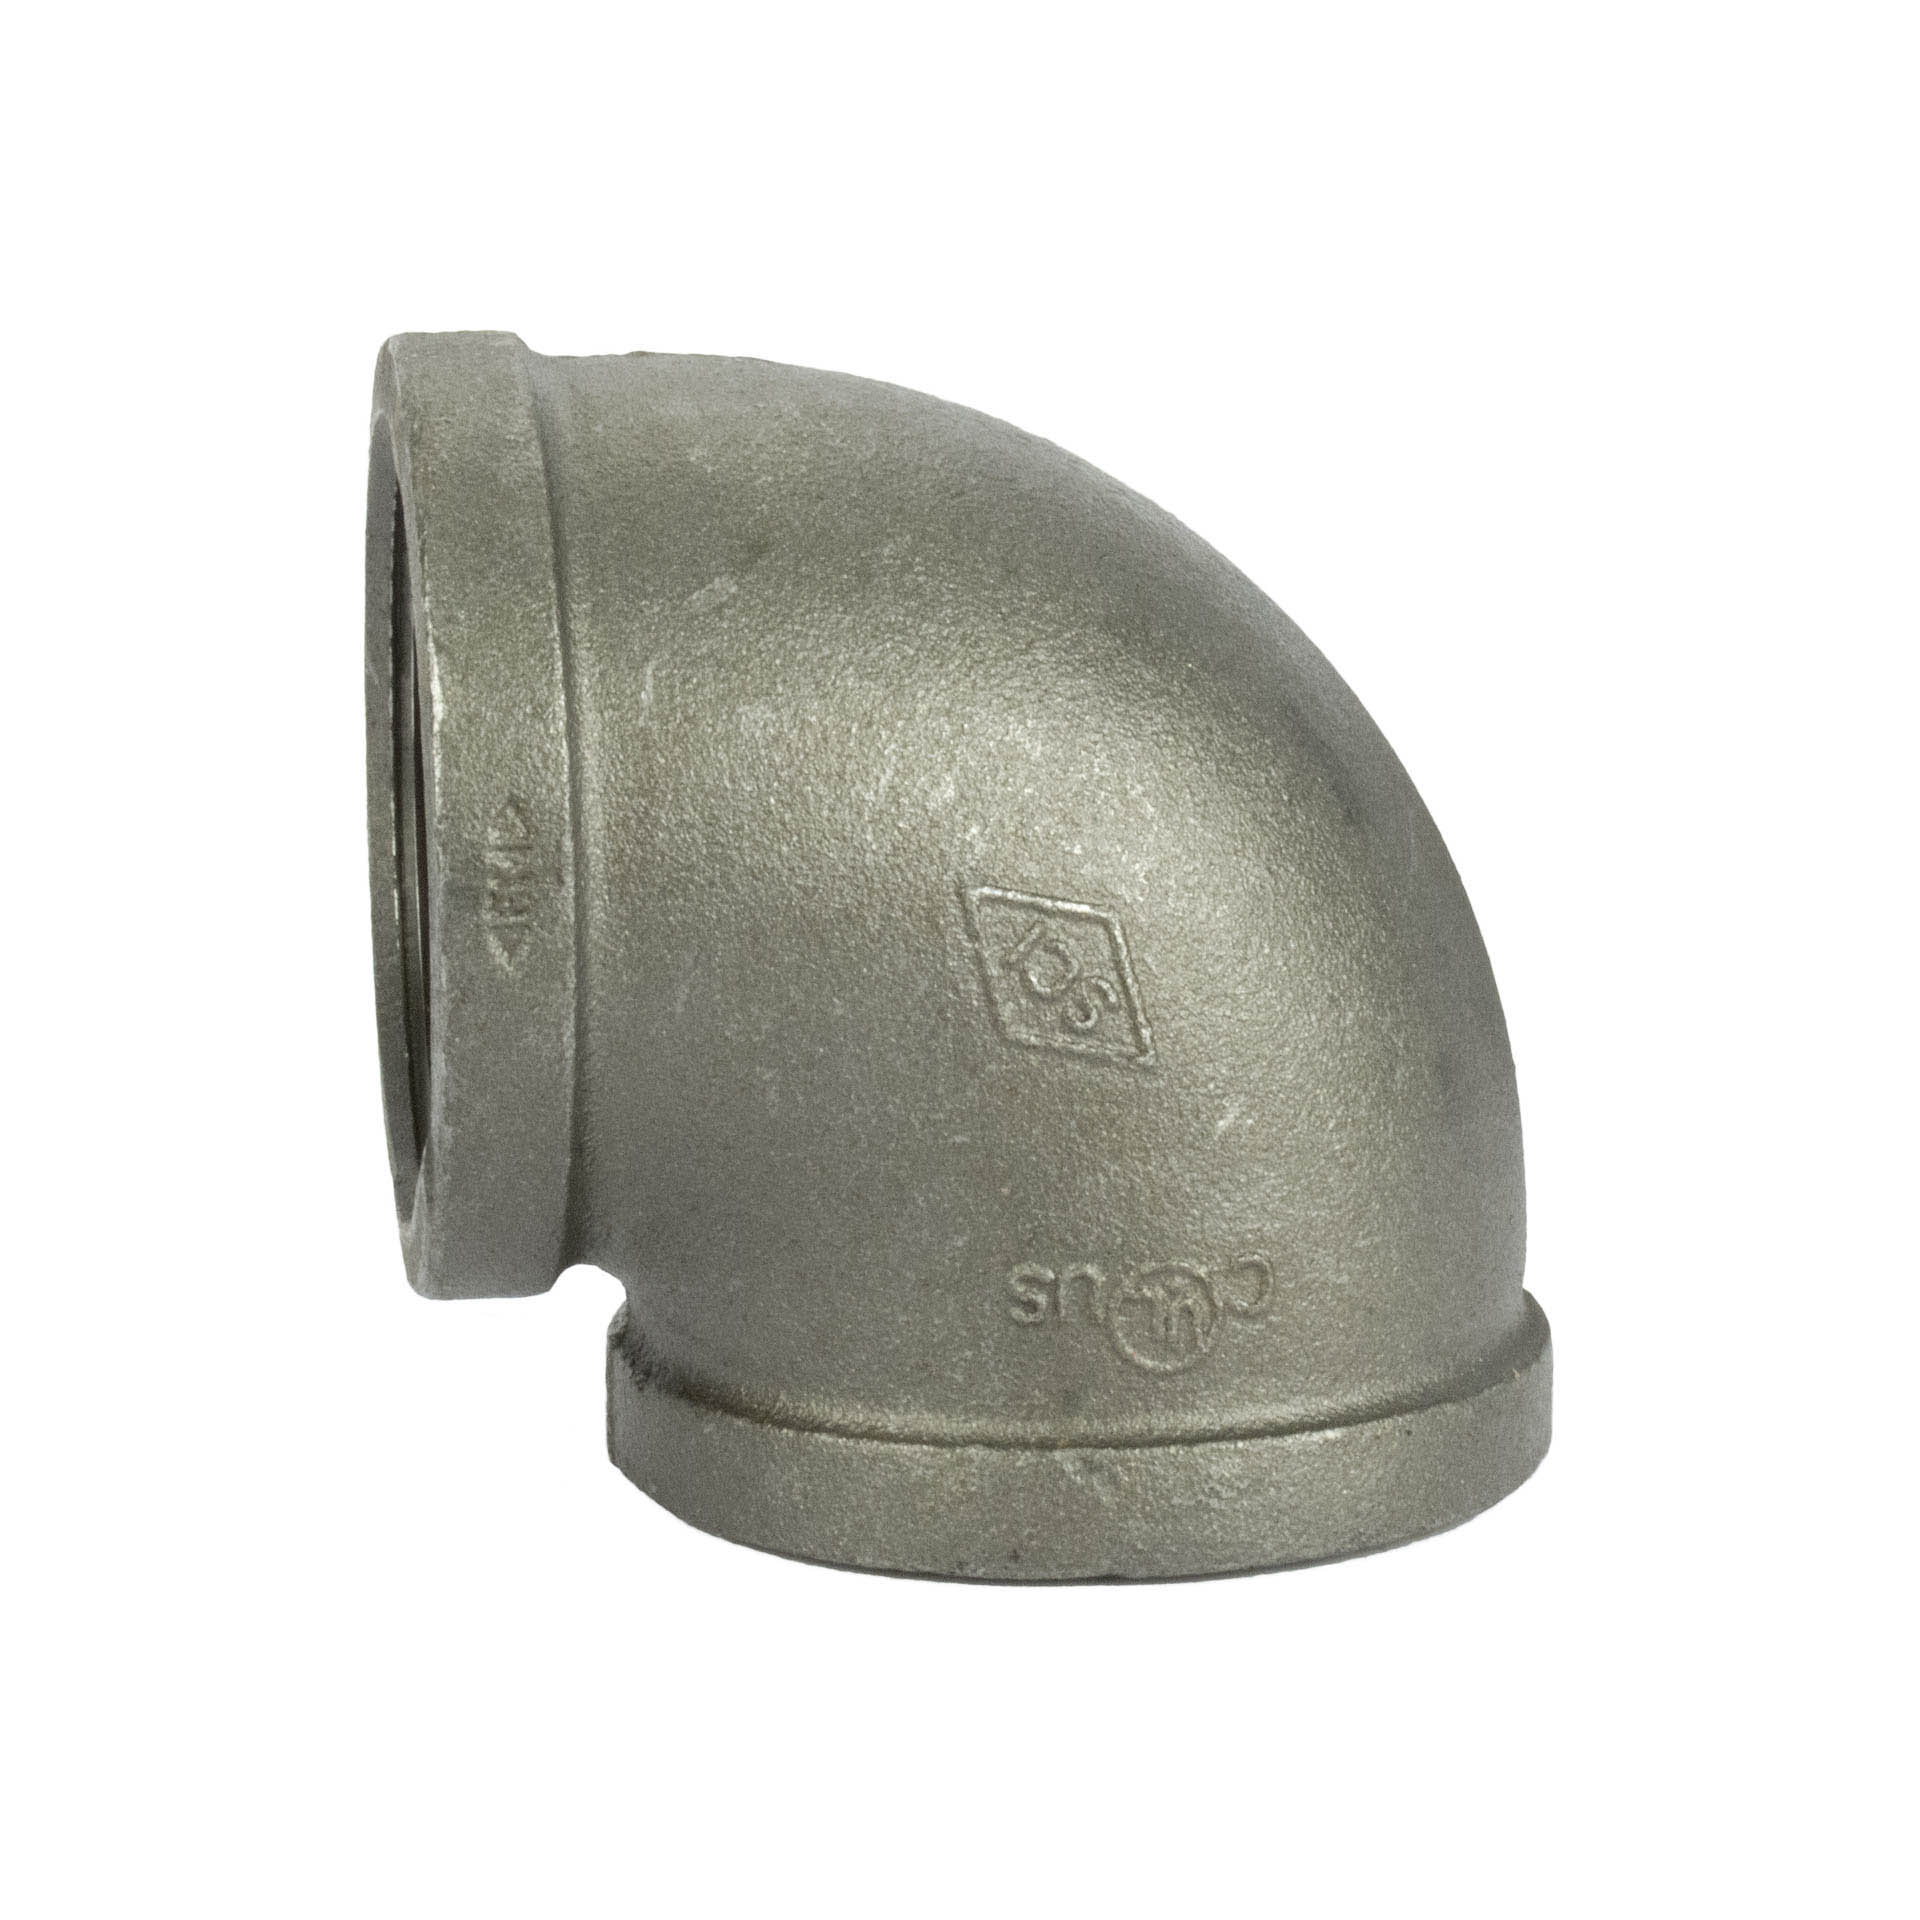 90° Threaded Elbow for sale